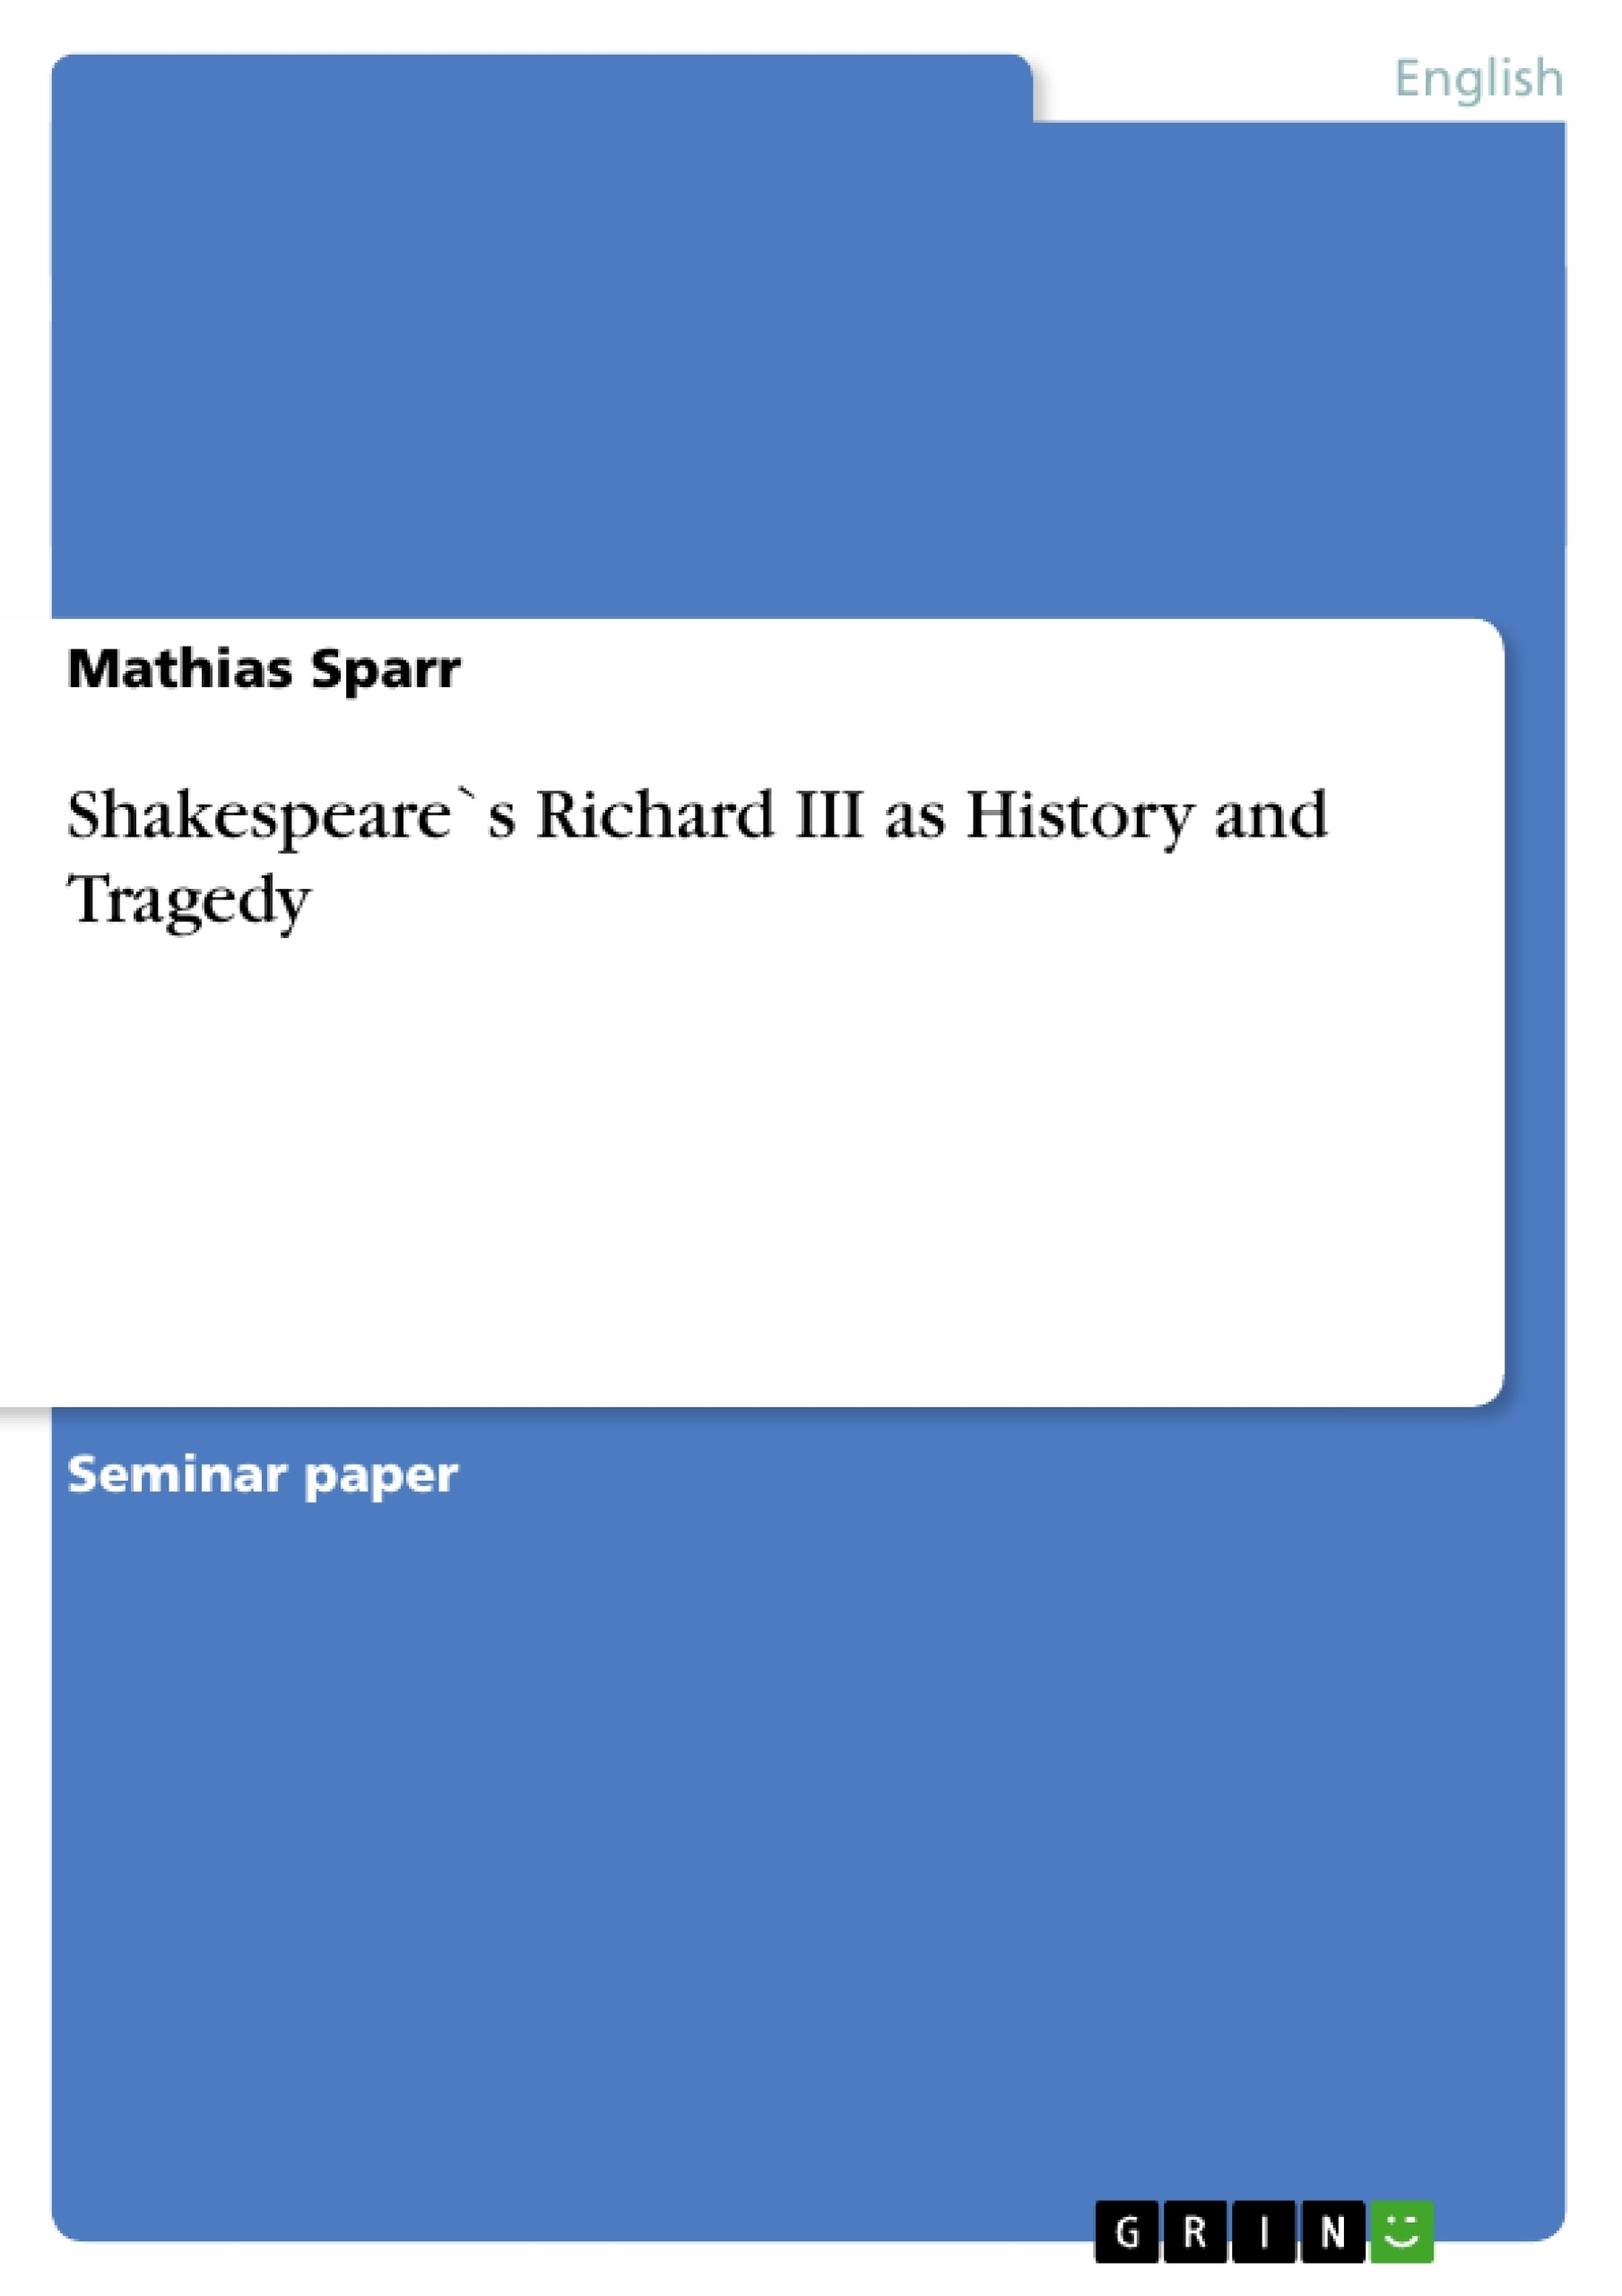 shakespeare`s richard iii as history and tragedy publish your shakespeare`s richard iii as history and tragedy publish your master s thesis bachelor s thesis essay or term paper